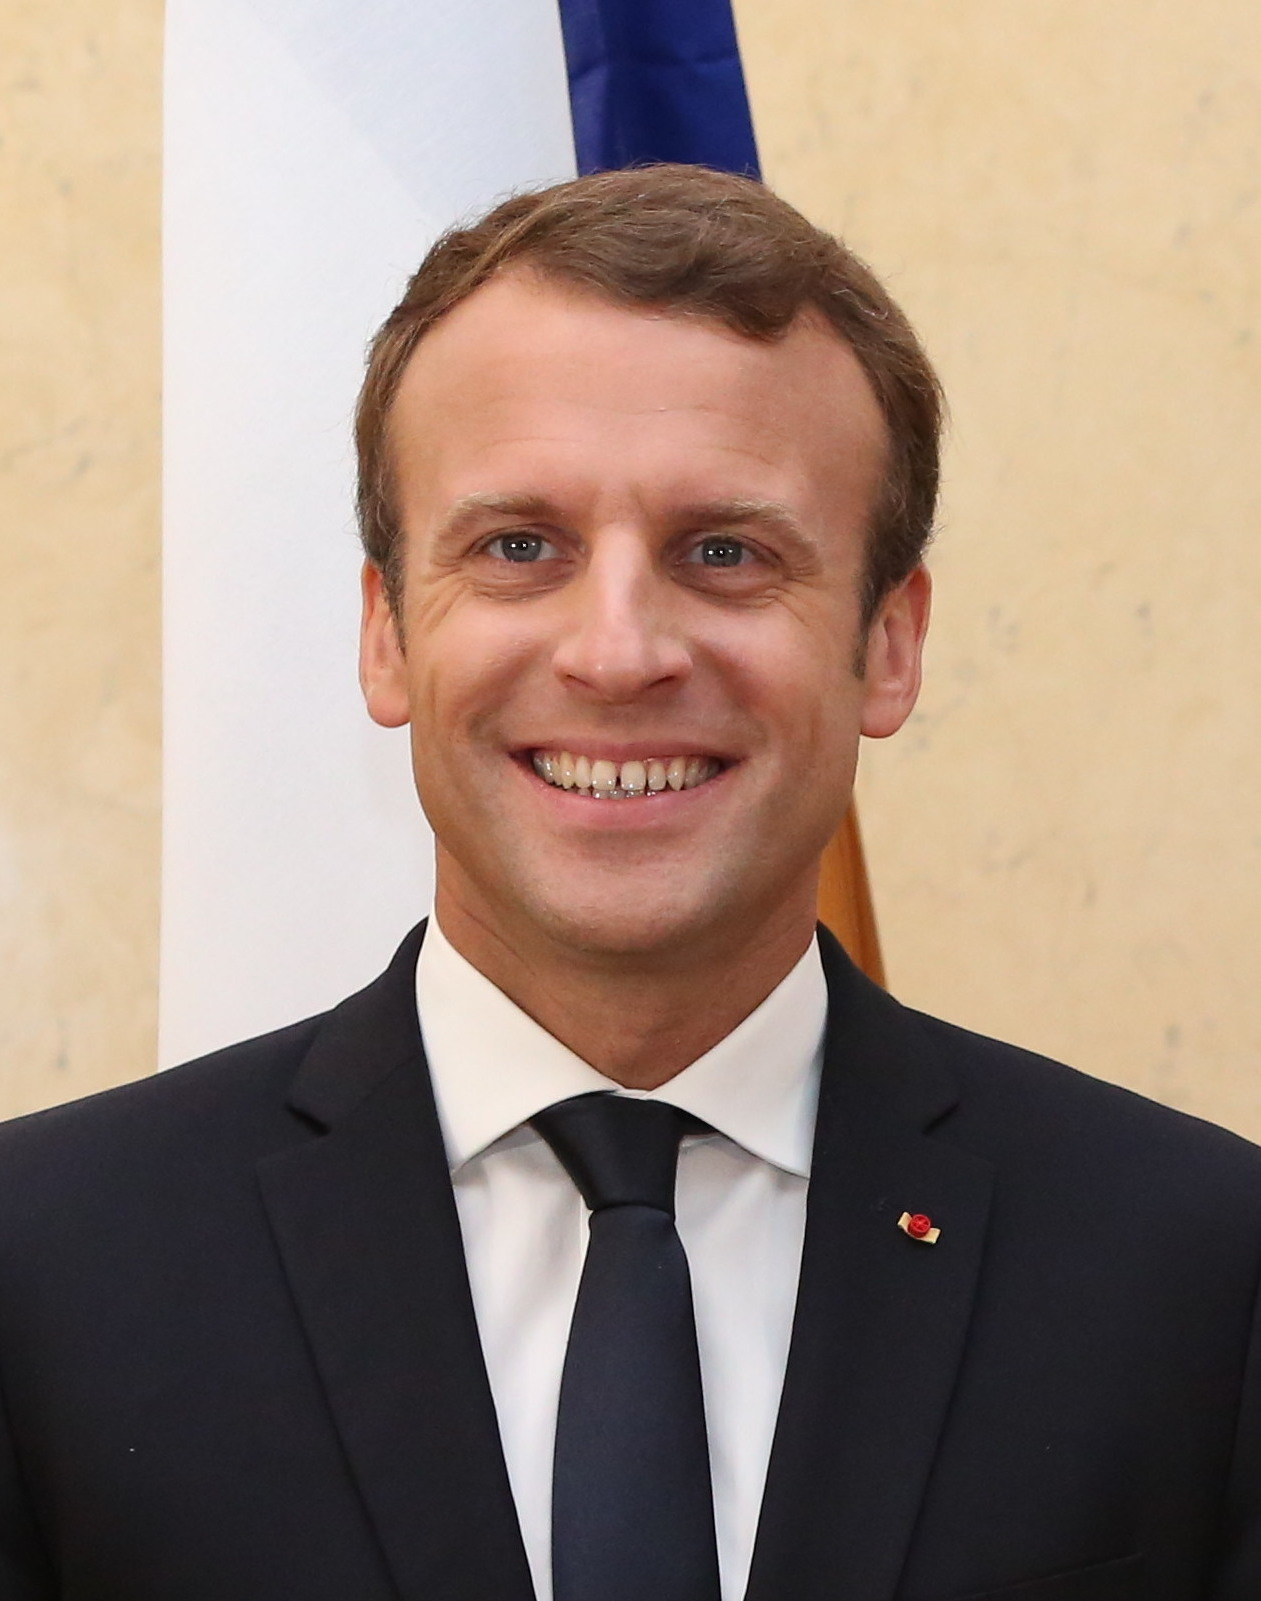 Emmanuel Macron Quotes 10 Quotes Quotes Of Famous People